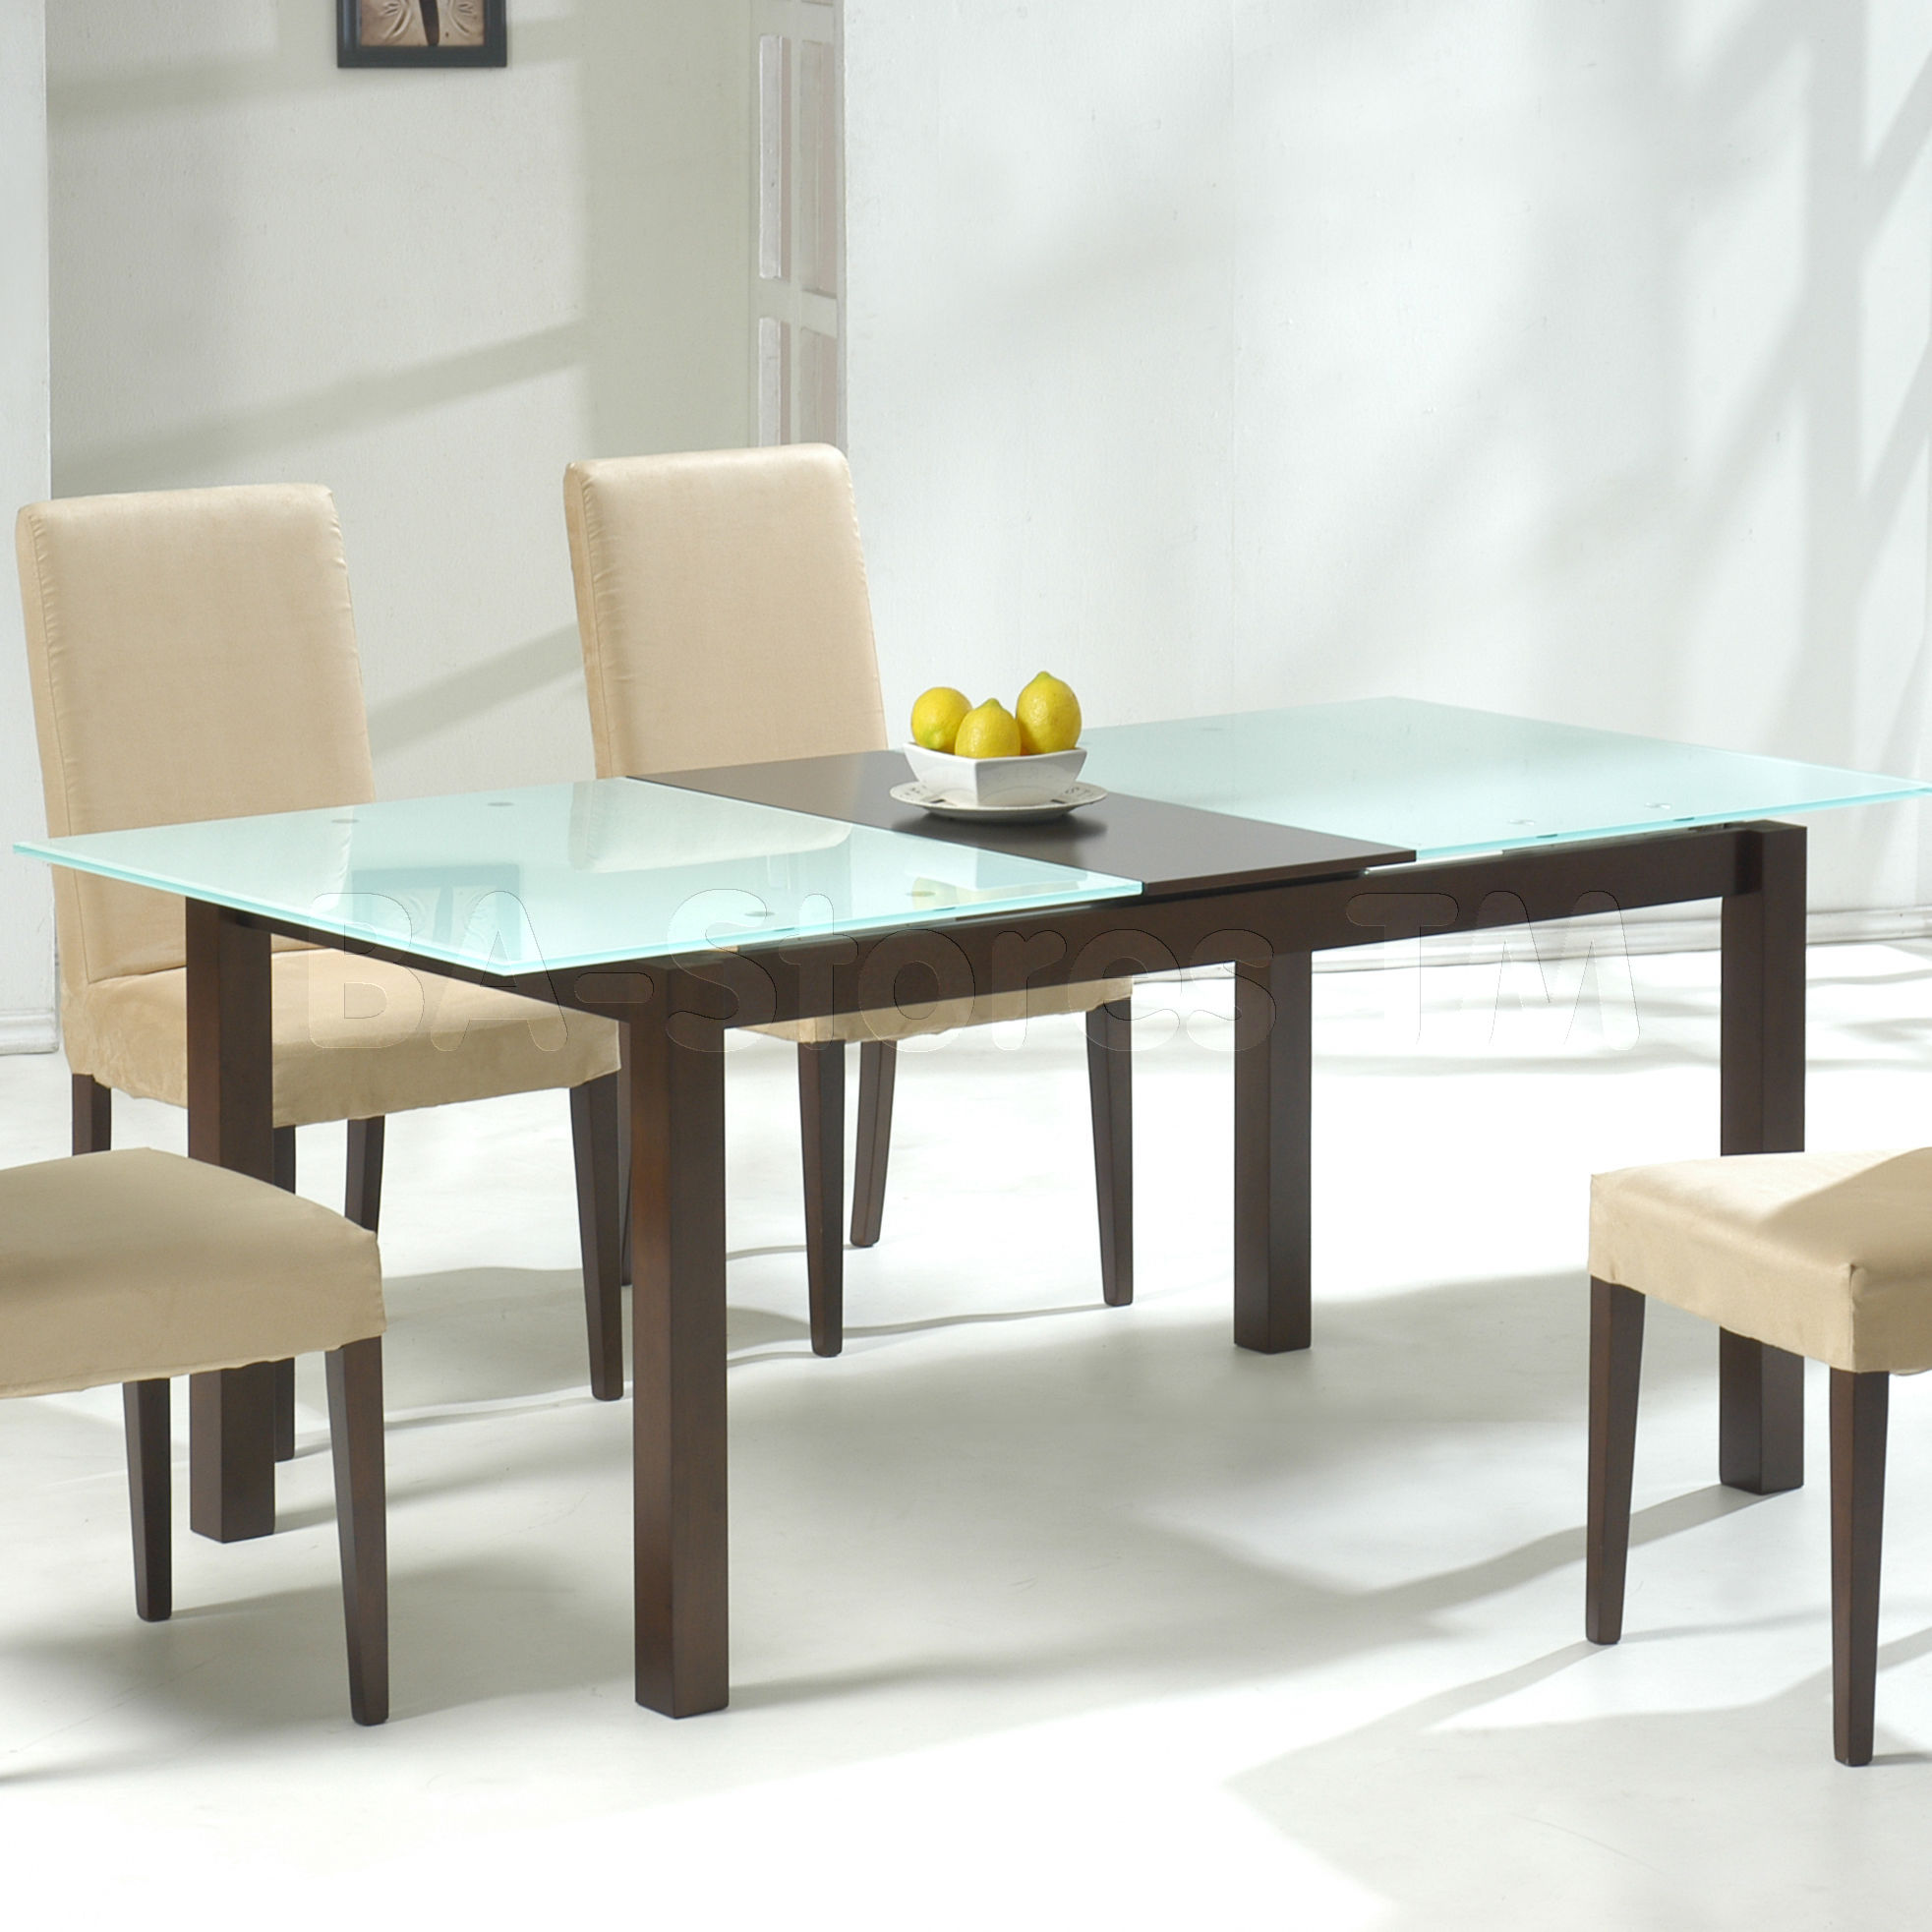 Small rectangular dining table homesfeed for Small dining room table and chairs